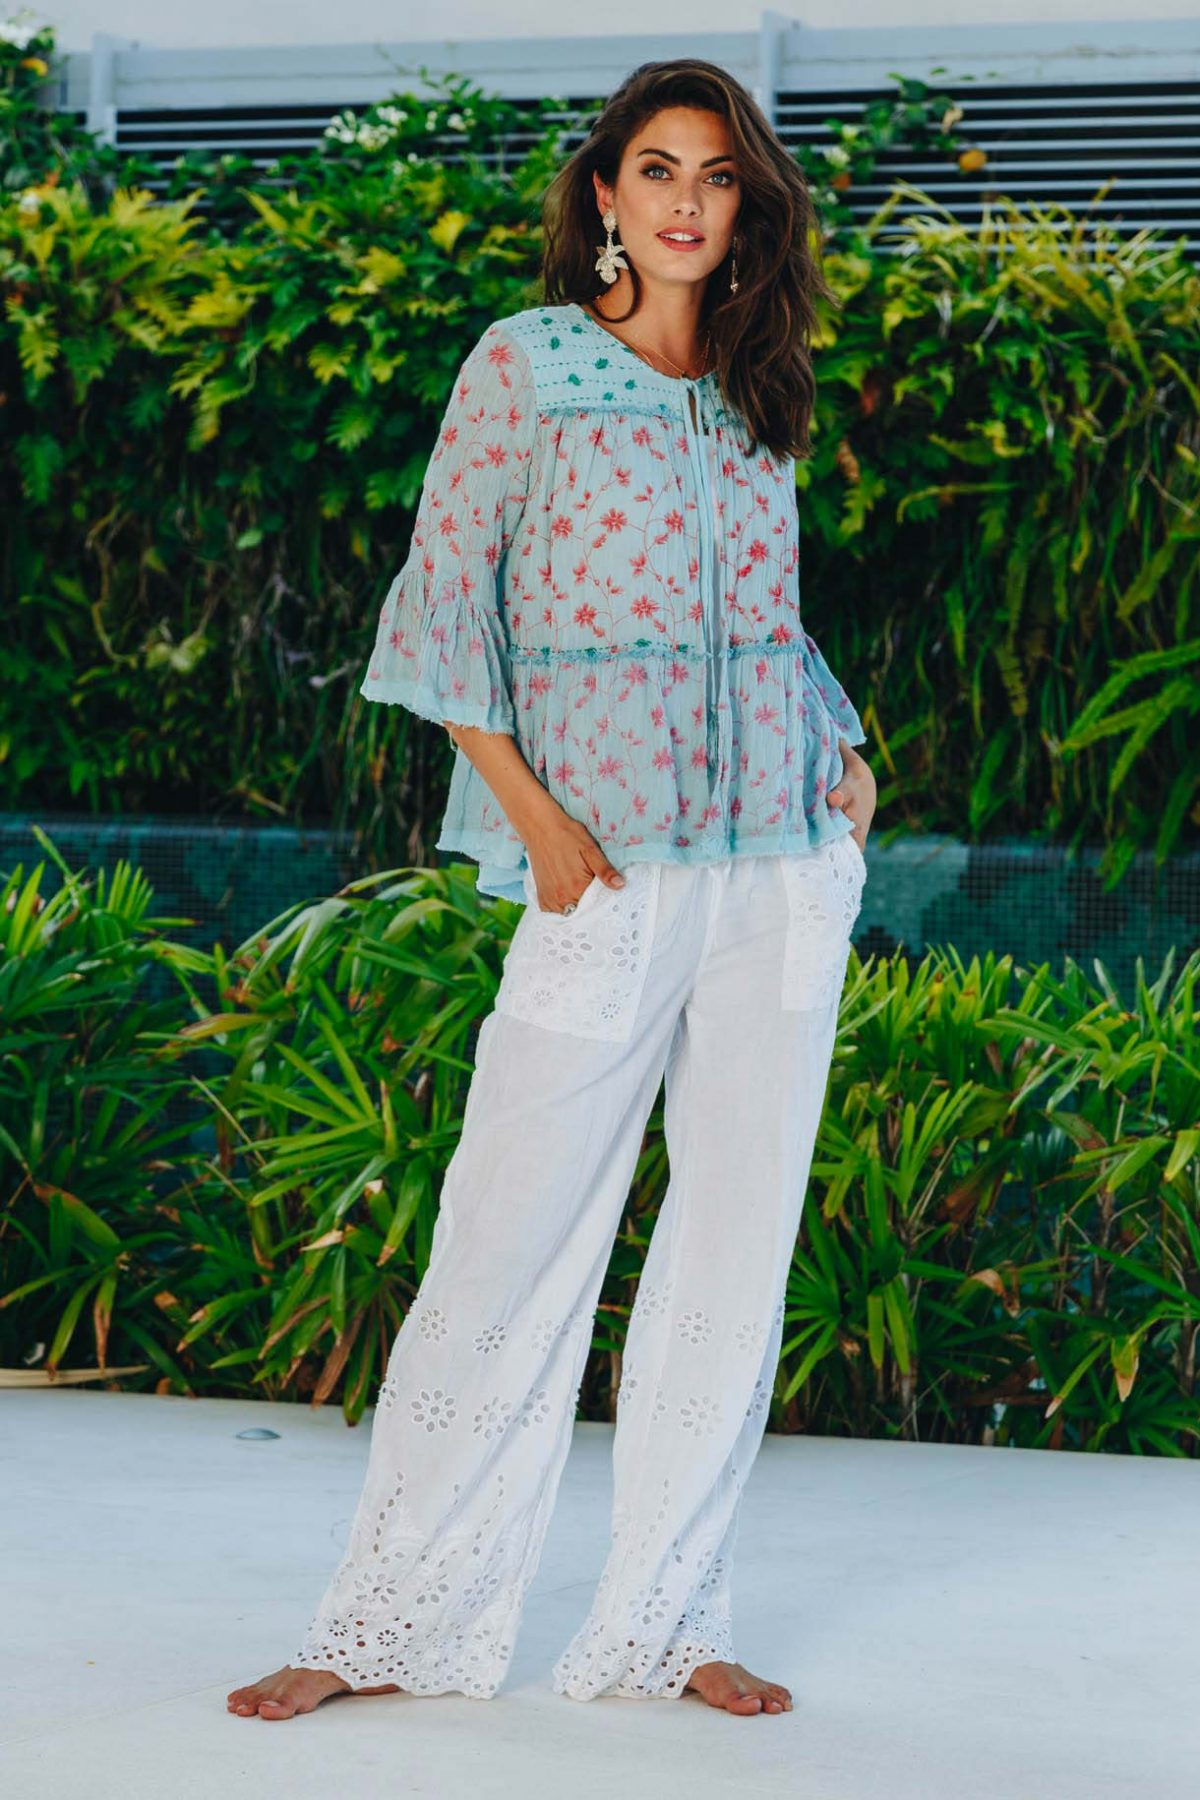 Lulasoul Floreana Pant collection September 2019